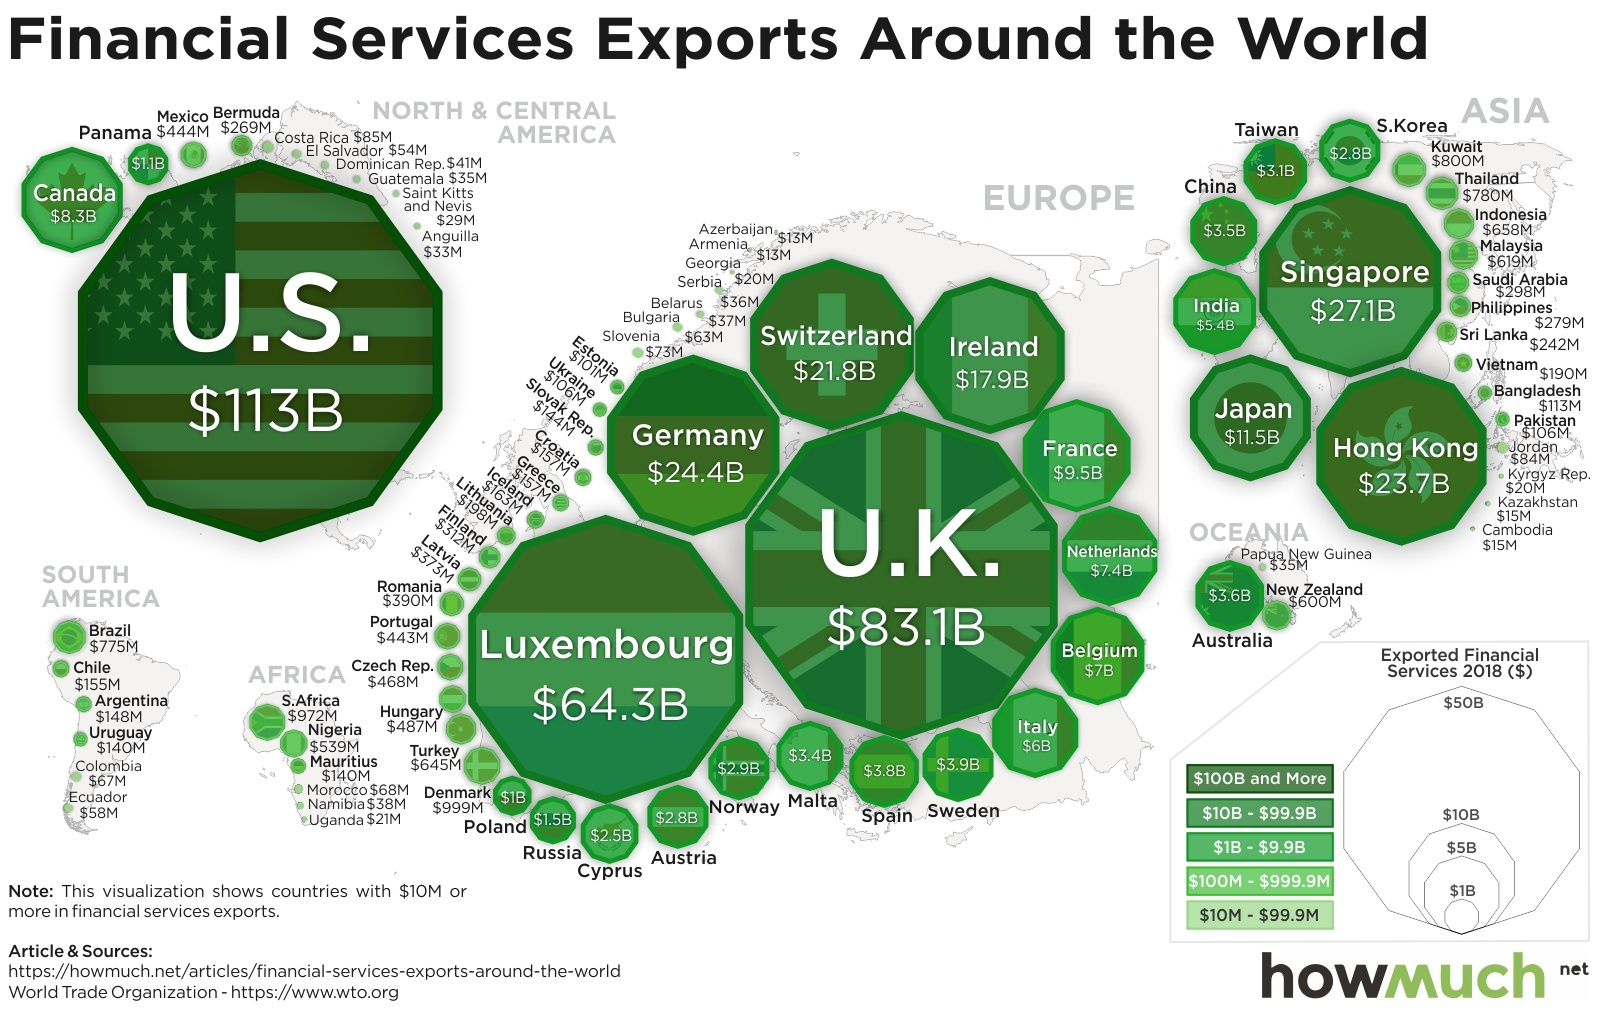 financia services exports around the world